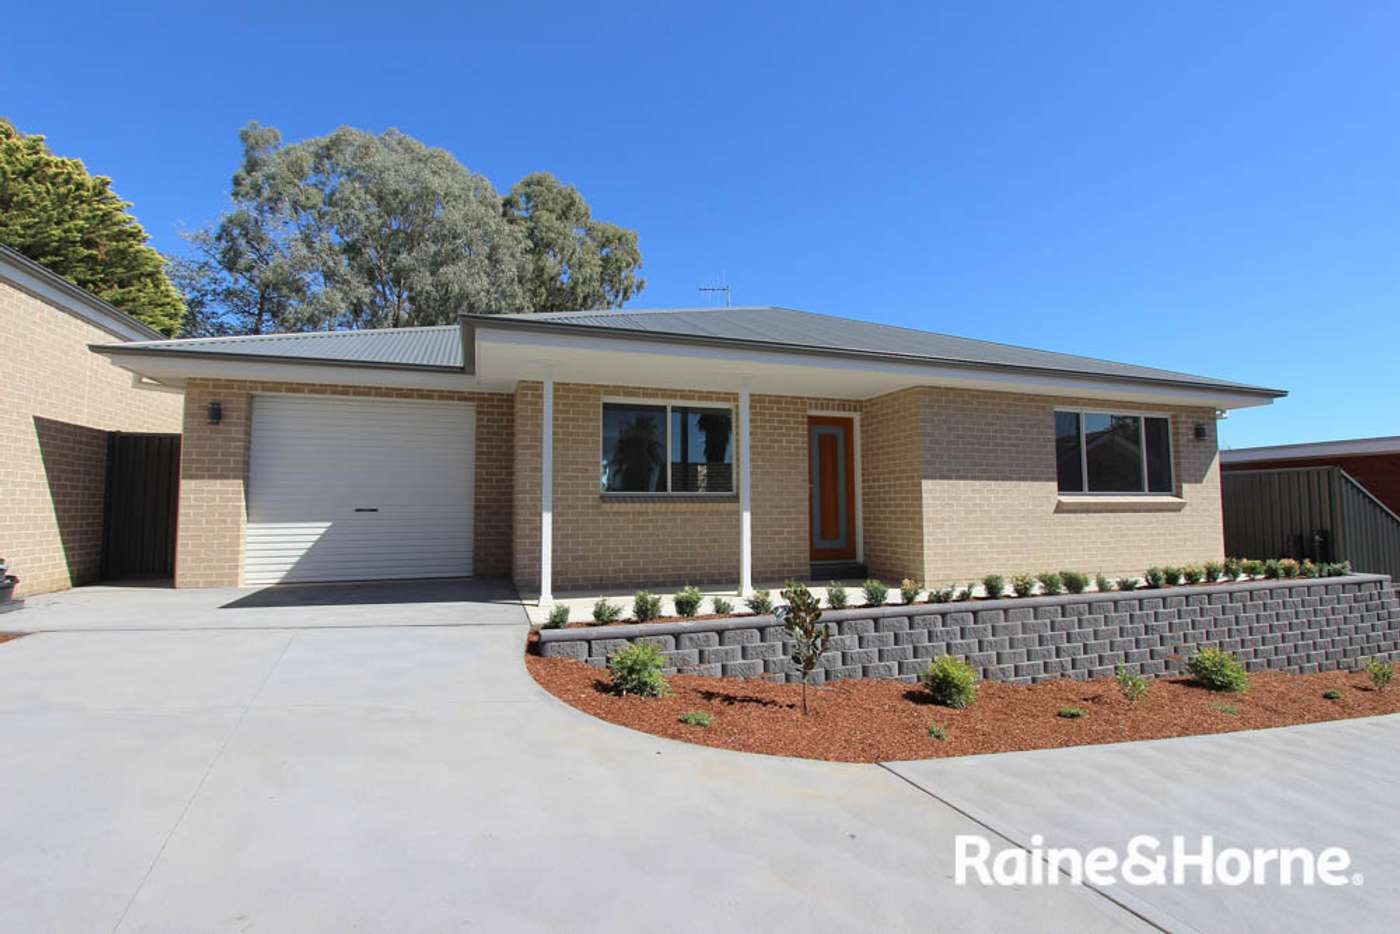 Main view of Homely villa listing, 12a Isaacs St, Bathurst NSW 2795